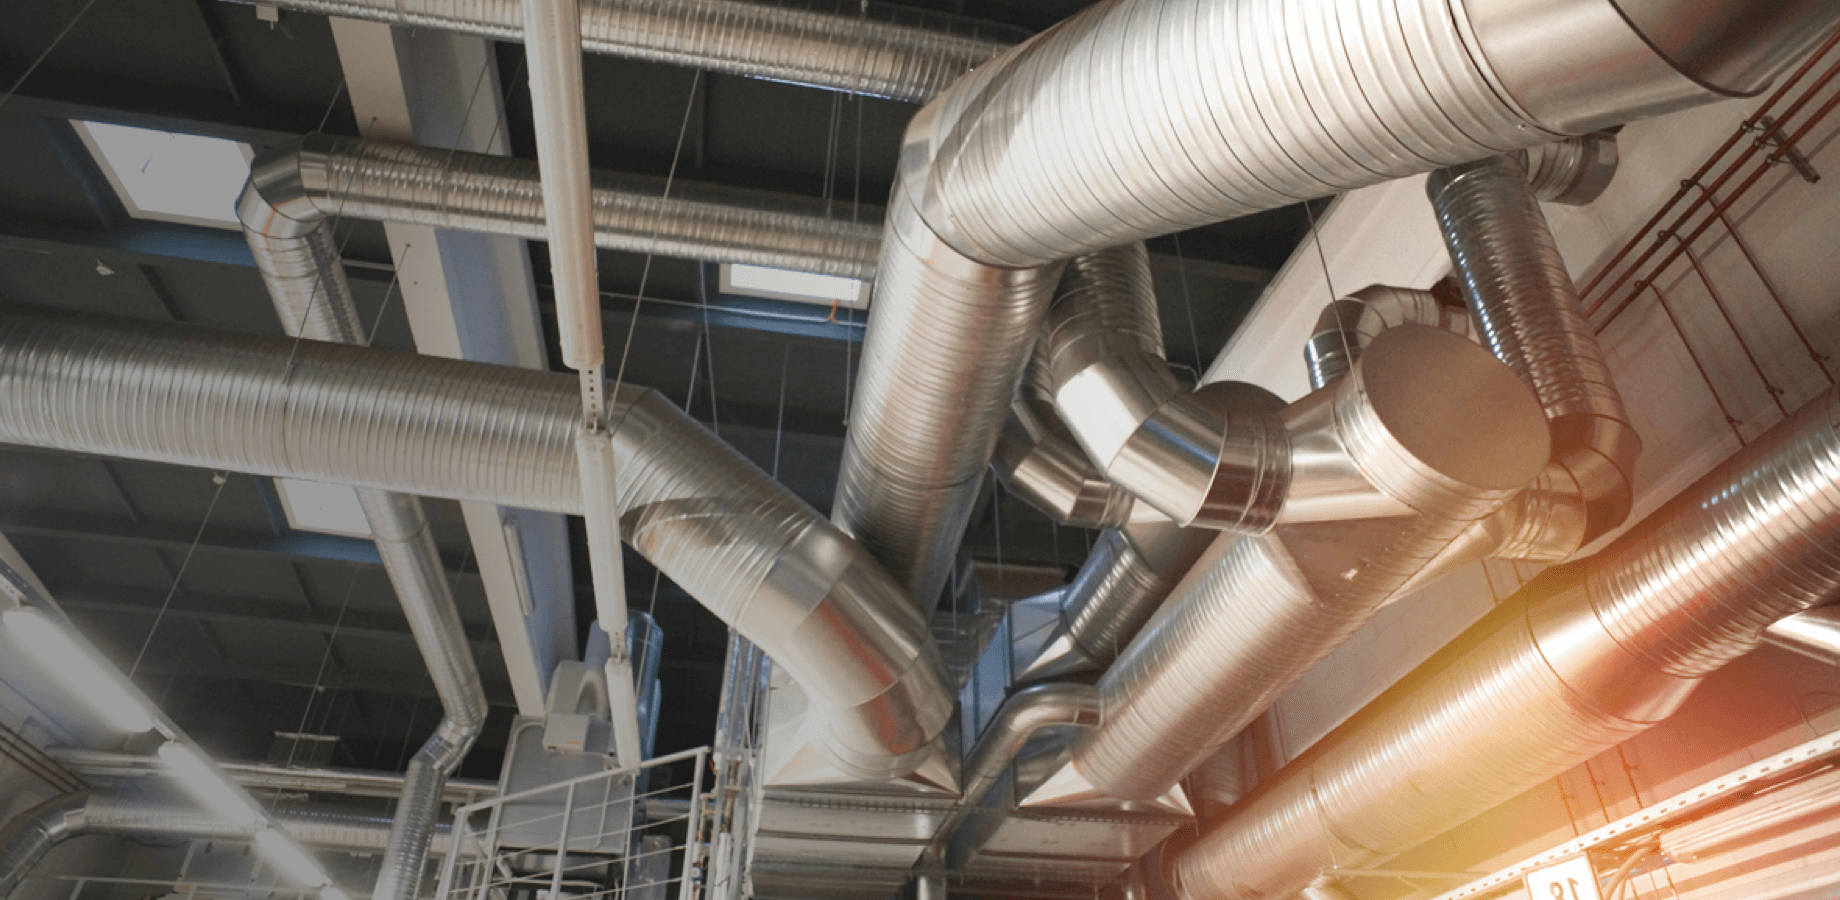 Mechanical systems and heating pipes to demonstrate the HVAC industry